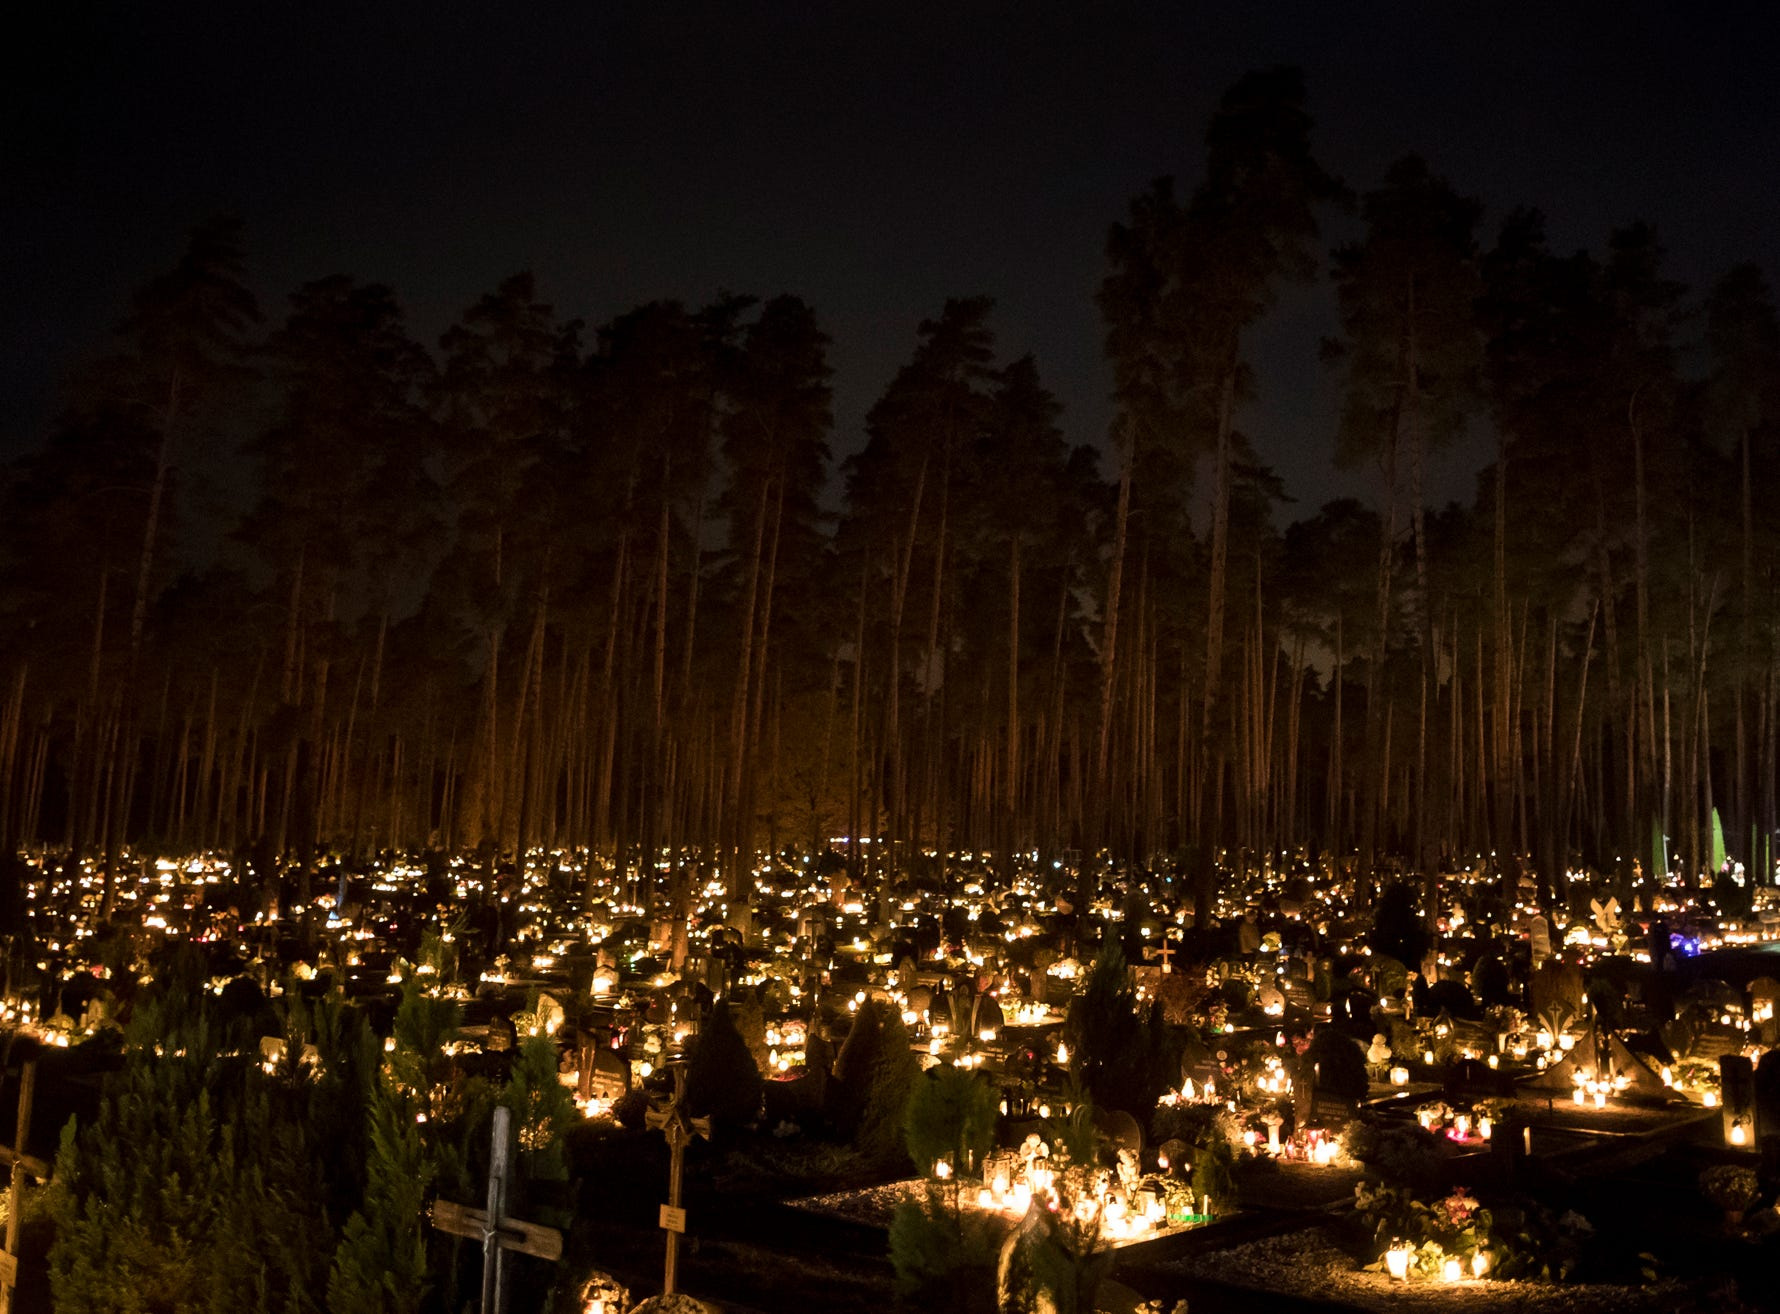 Relatives gather around some of the graves illuminated by candles during All Saints Day at the cemetery in Vilnius, Lithuania, Thursday, Nov. 1, 2018. Candles illuminated tombstones in graveyards across Europe as people communed with the souls of the dead on Thursday, observing one of the most sacred days in the Catholic calendar.(AP Photo/Mindaugas Kulbis)